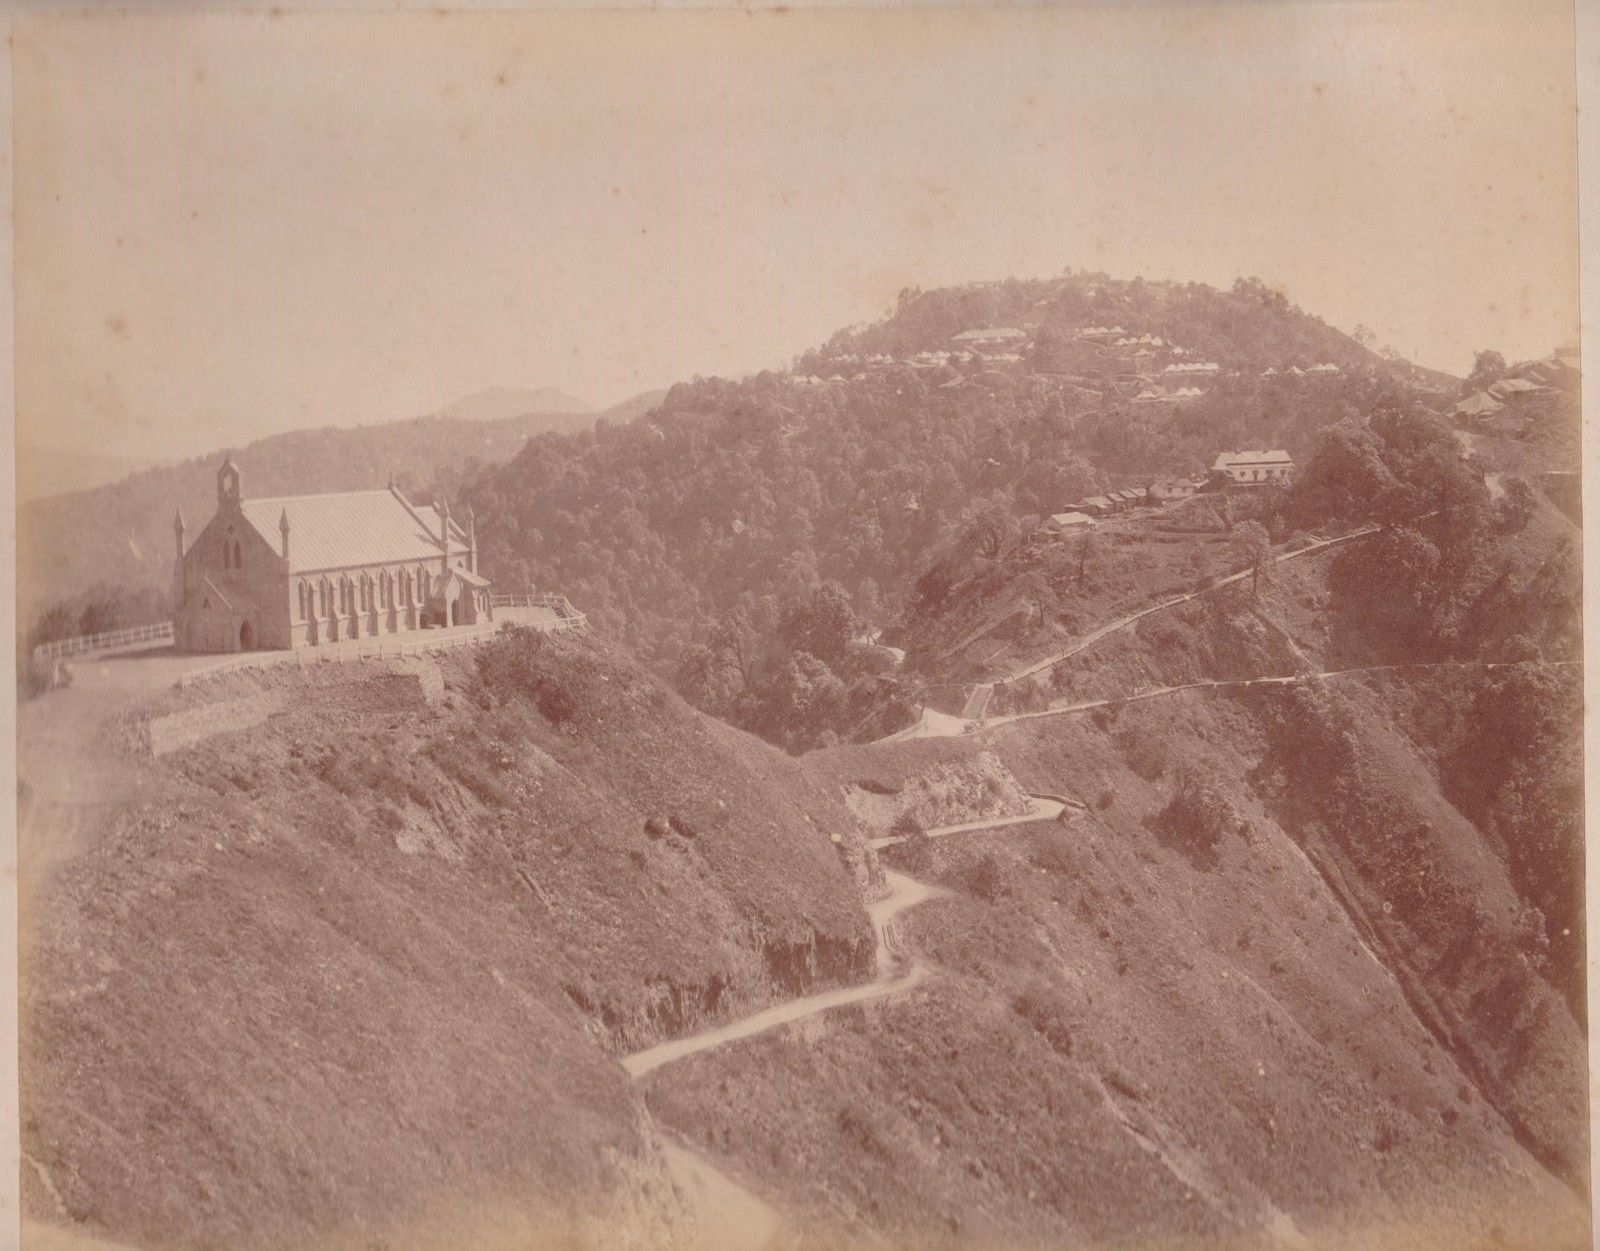 Church on a Mountain - India, c1870's